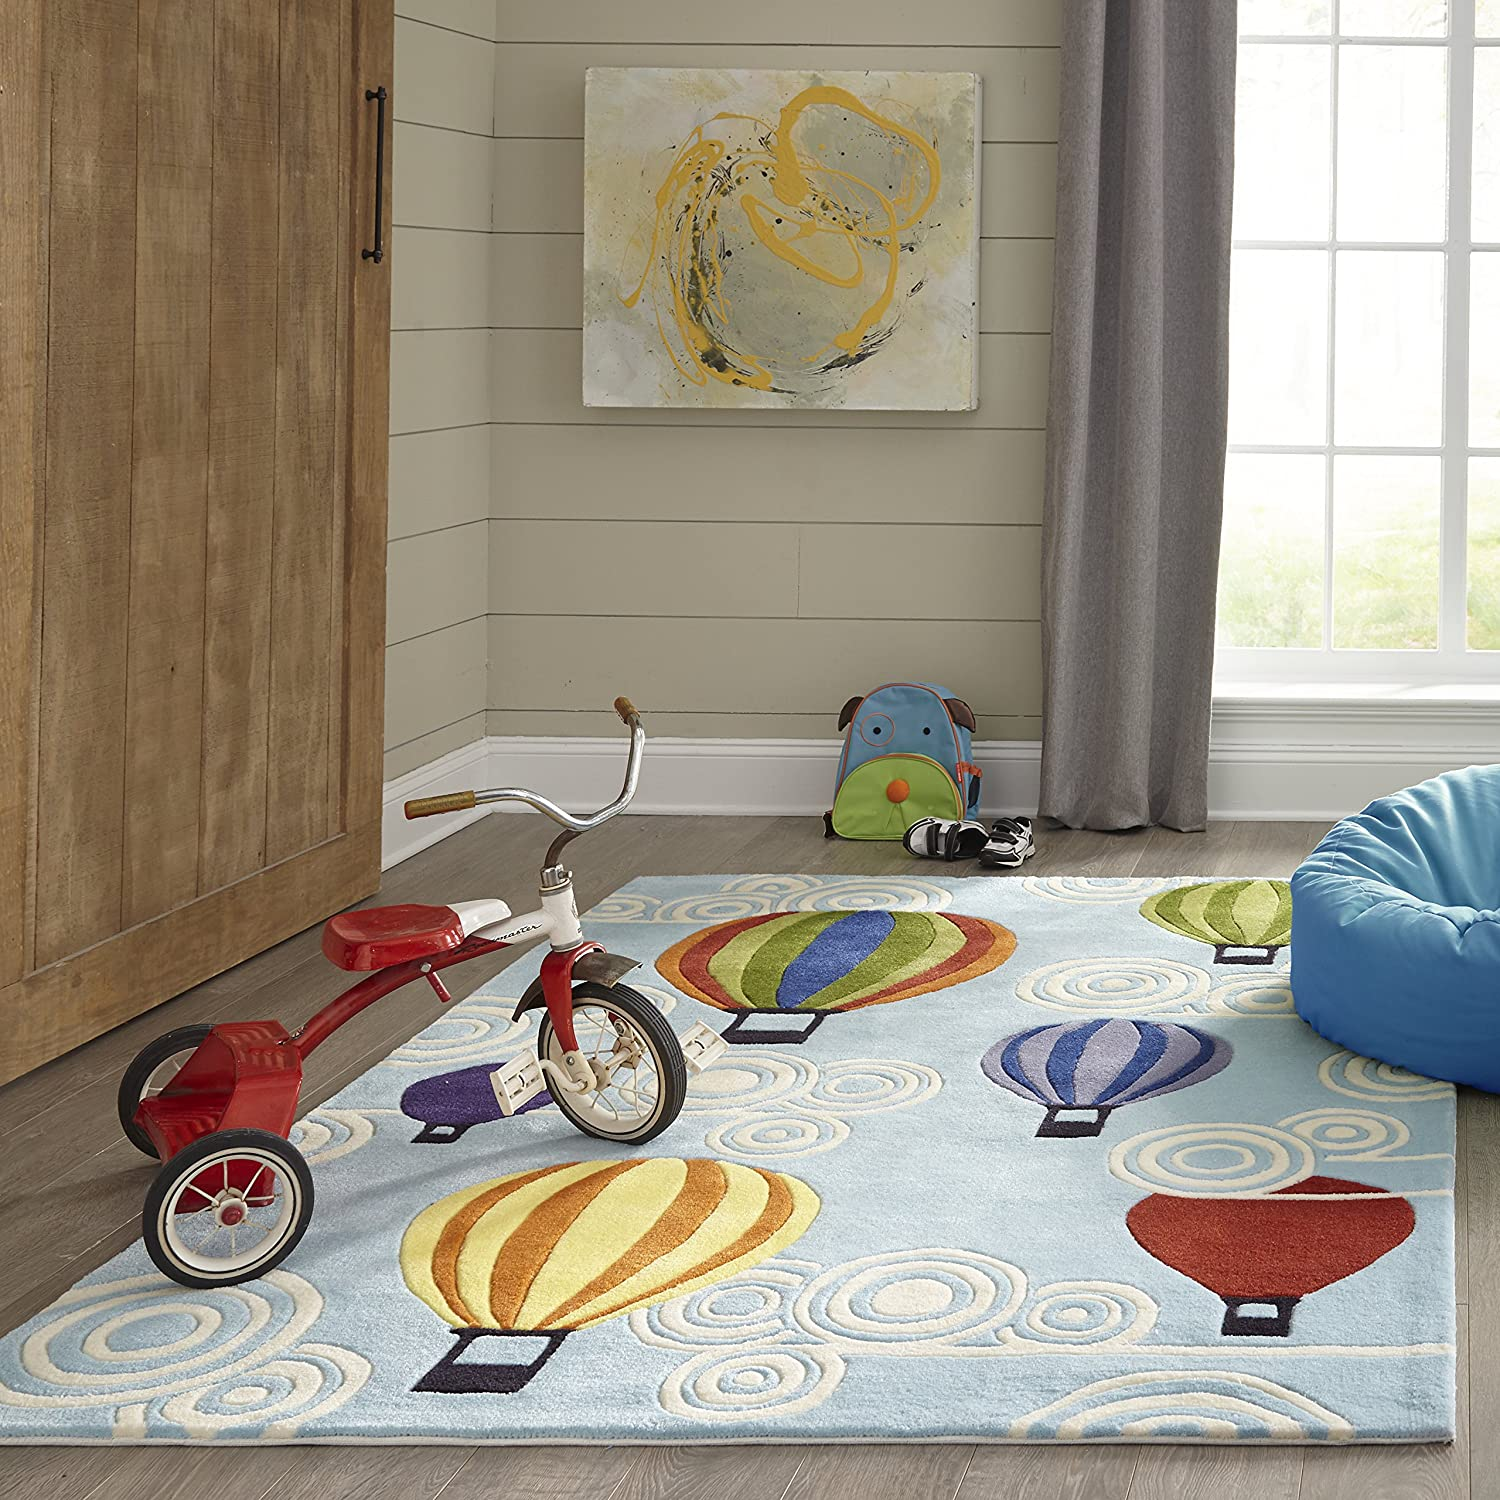 Momeni Rugs Kids Themed Hand Carved & Tufted Area Rug, 2' x 3', Multicolor Hot Air Balloons on Sky Blue